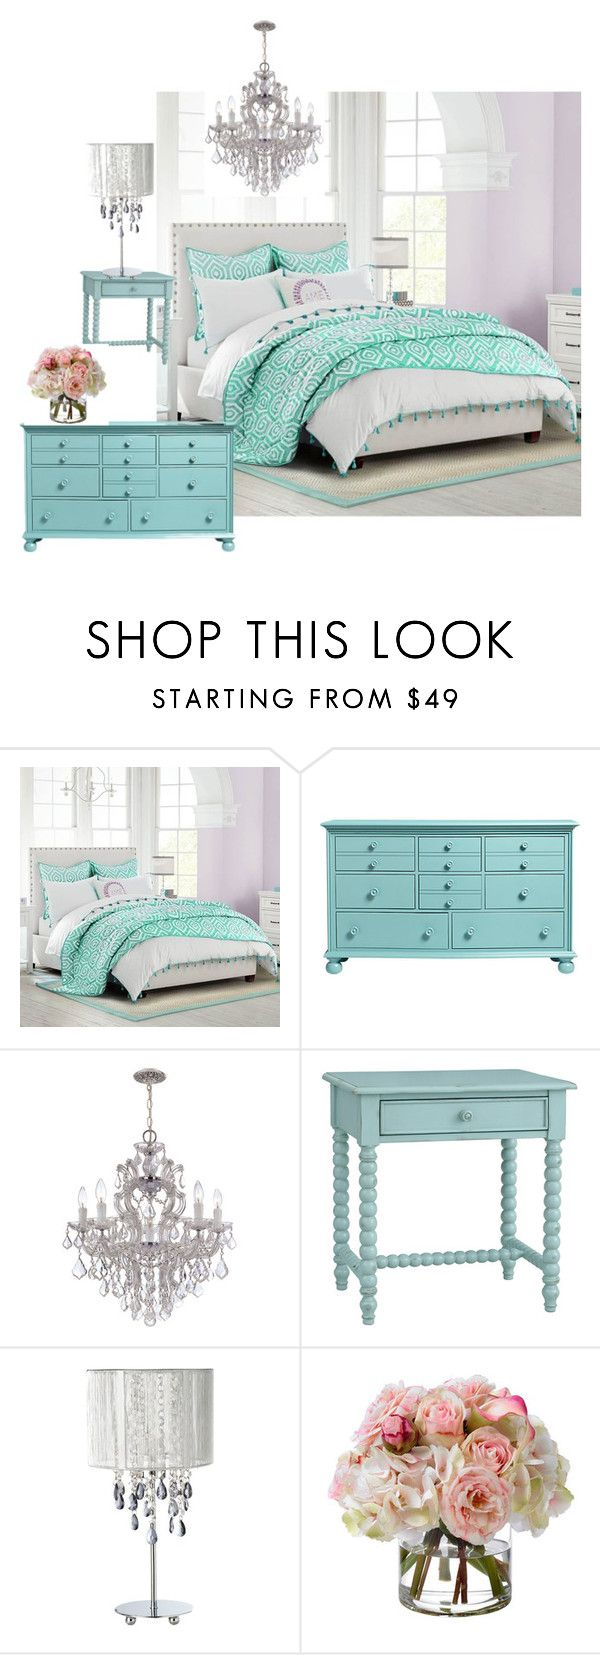 """McDonald Tween Bedroom"" by tmarrah on Polyvore featuring interior, interiors, interior design, home, home decor, interior decorating, PBteen, Redford House, Diane James and bedroom"